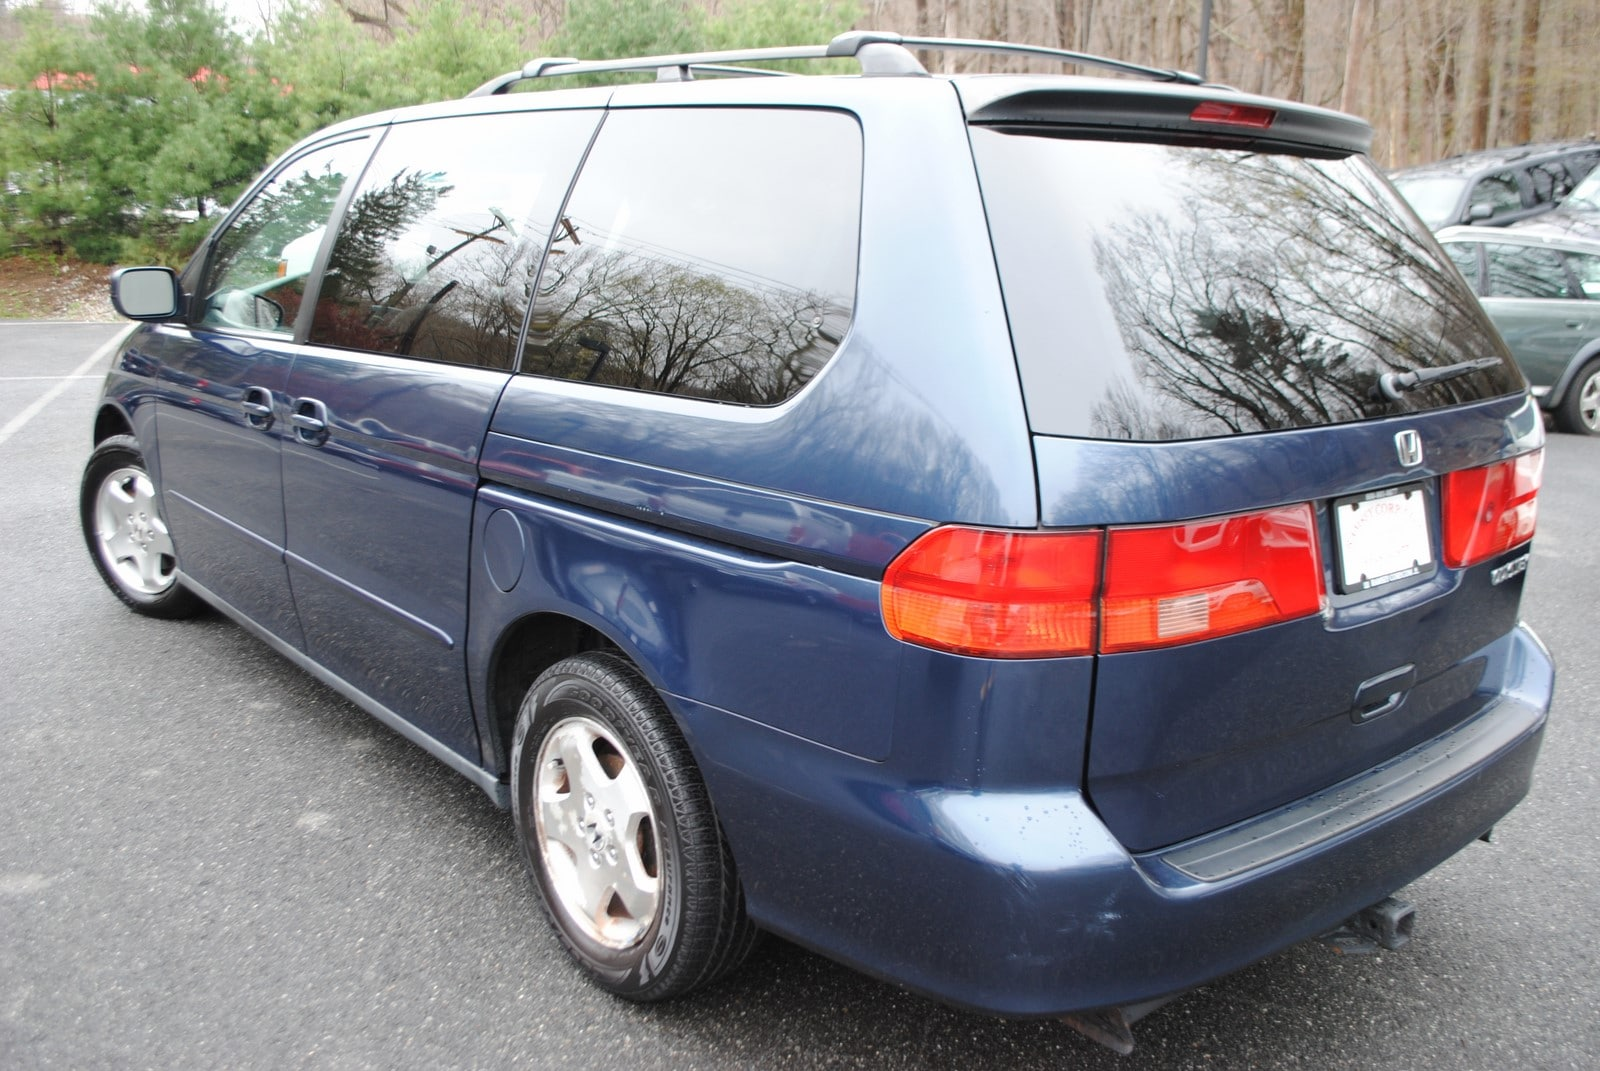 Used 1999 honda odyssey for sale west milford nj for Honda odyssey for sale nj